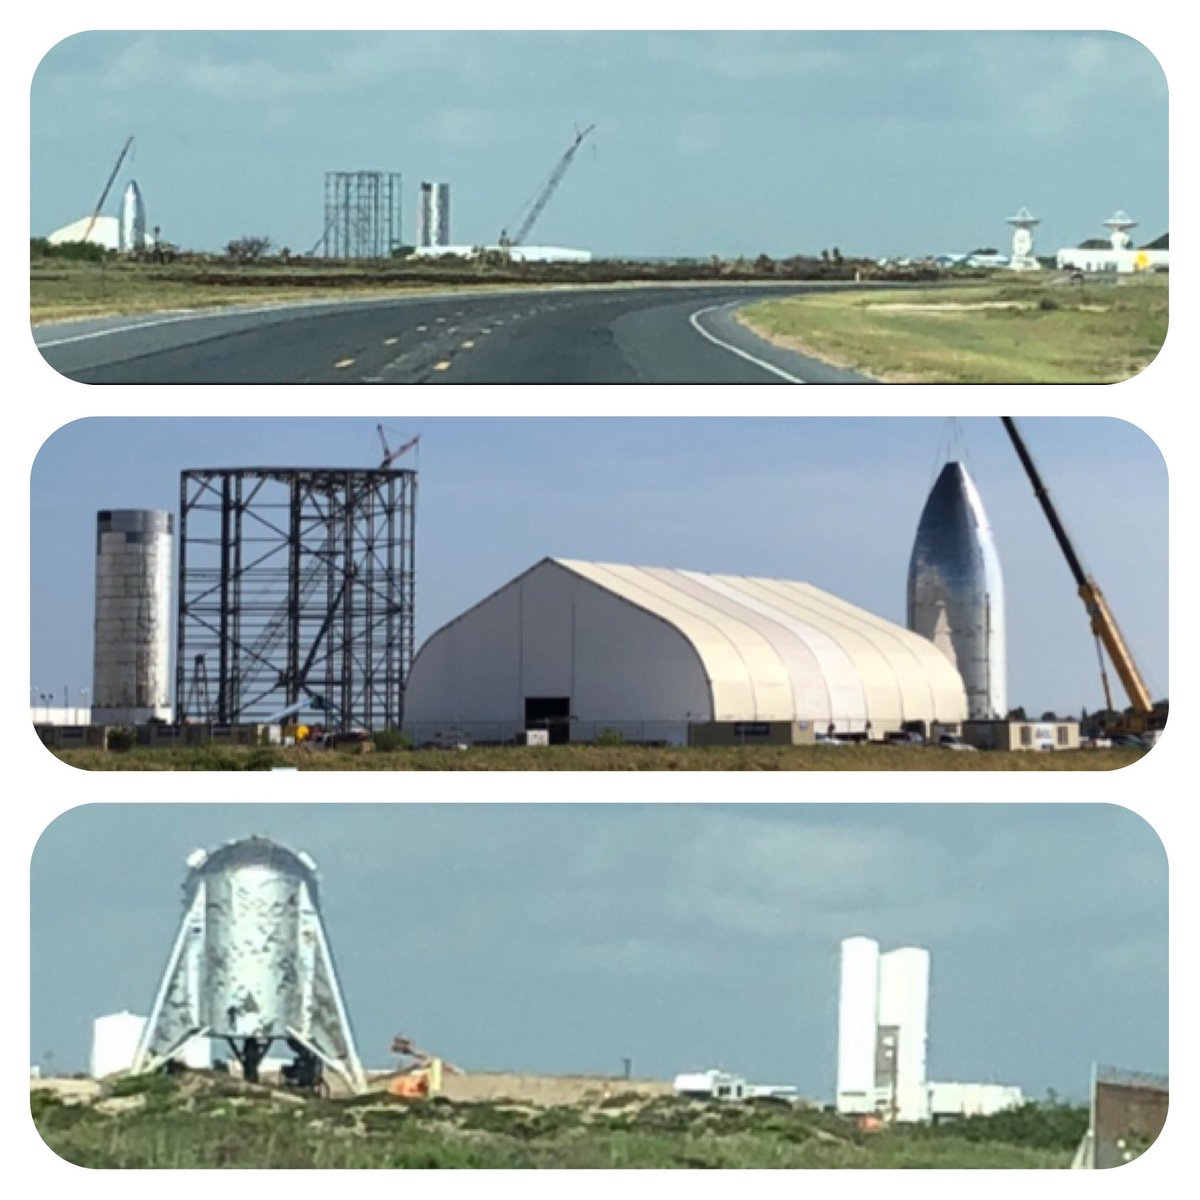 SpaceX Boca Chica - Starship Mk1 and Starhopper (Aug 14)